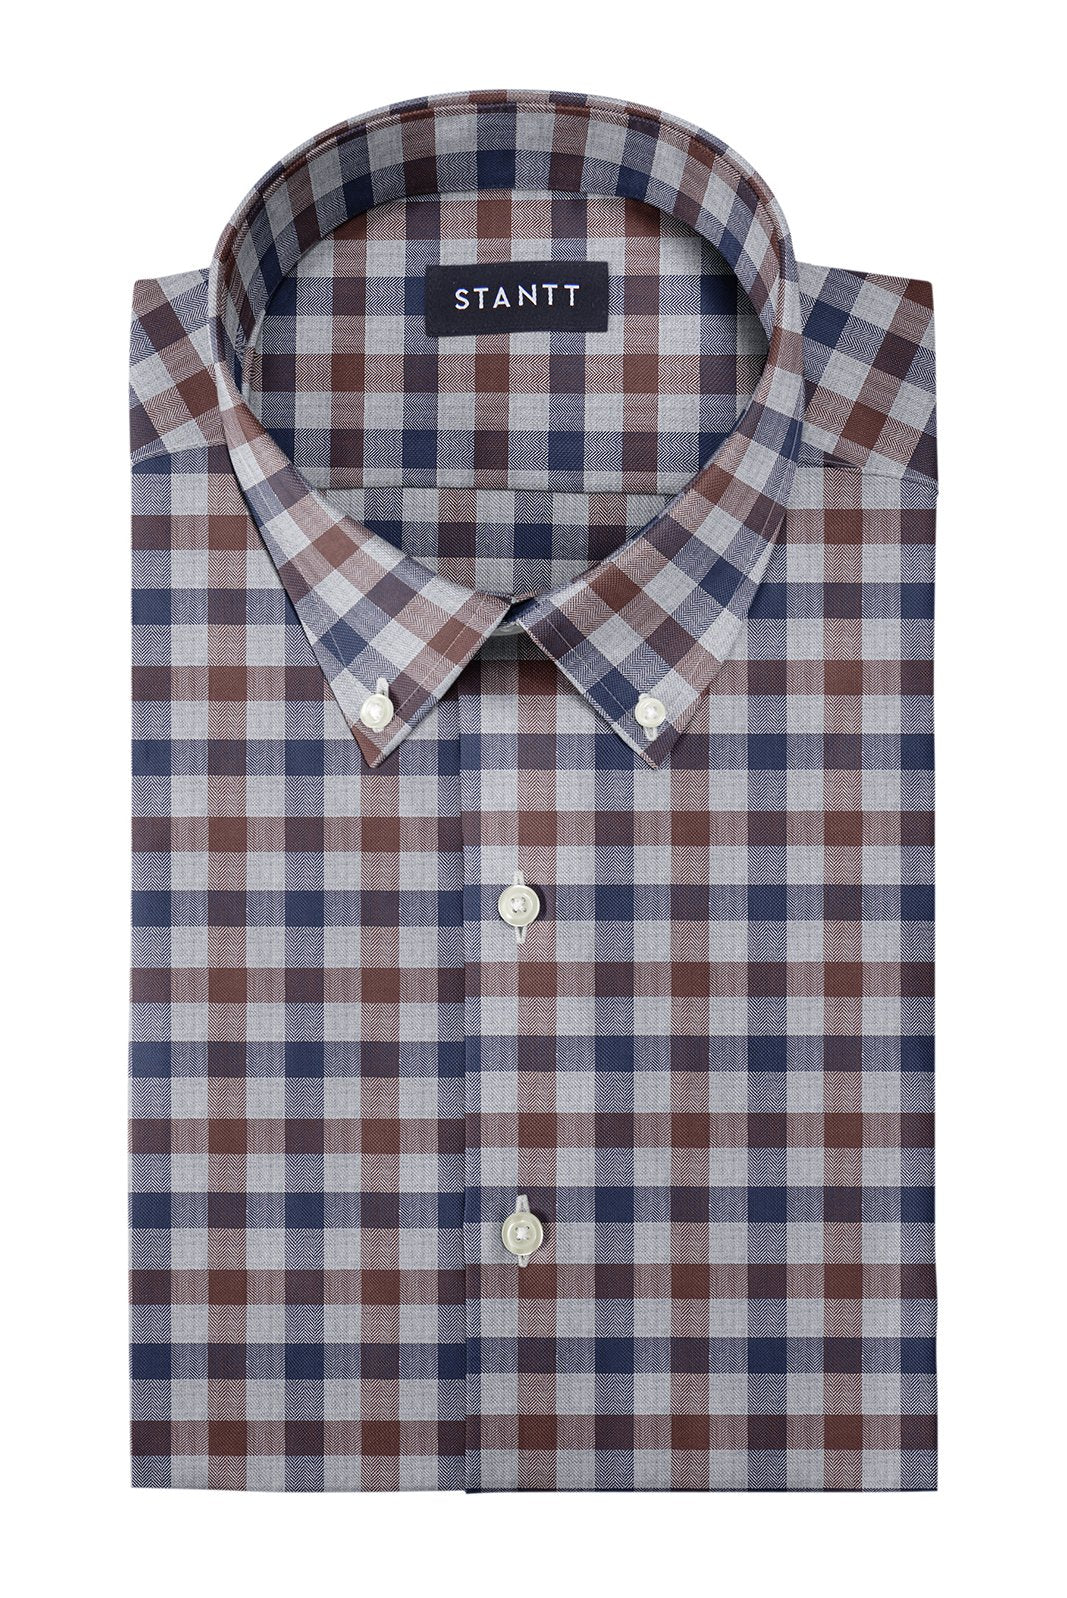 Brown Herringbone Gingham: Button-Down Collar, Barrel Cuff